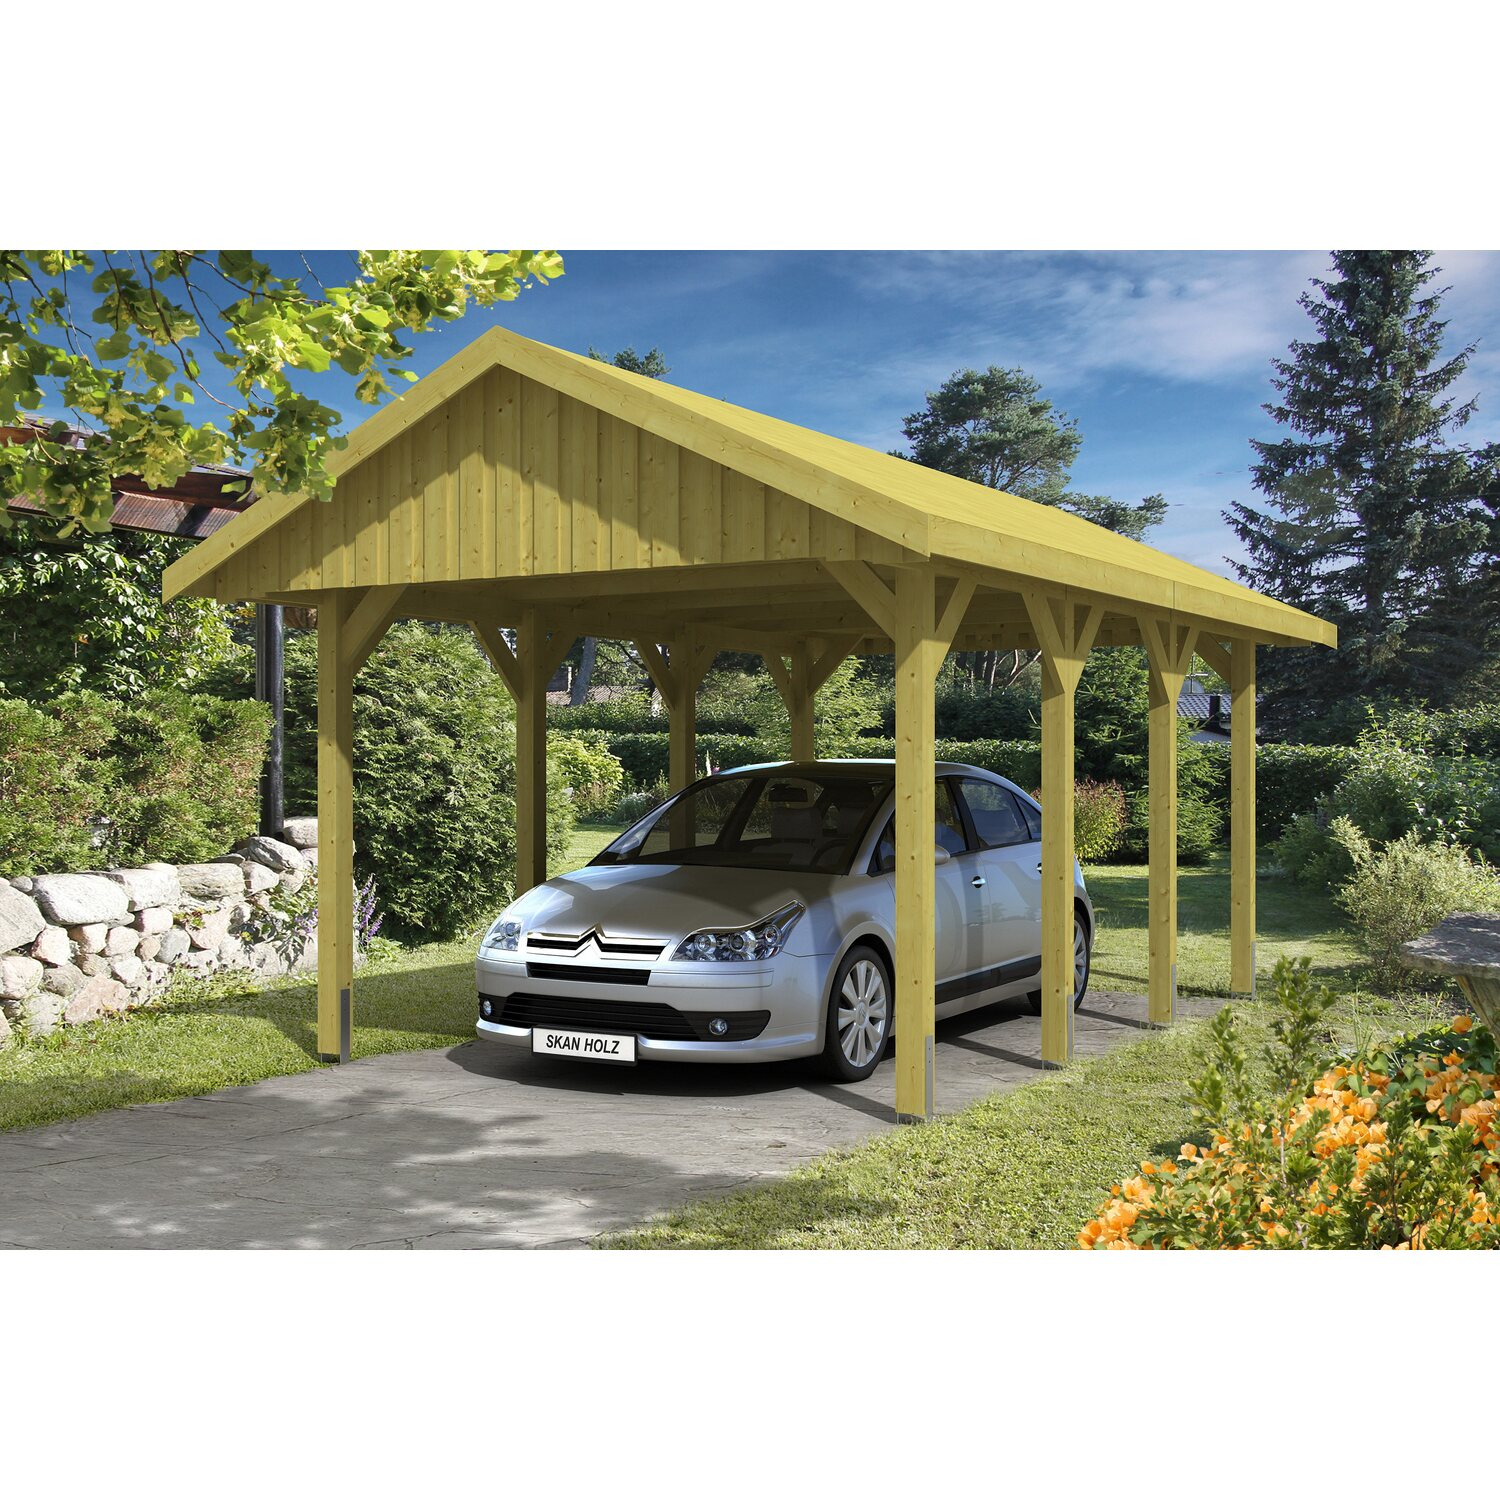 skan holz satteldach carport sauerland 380 cm x 600 cm. Black Bedroom Furniture Sets. Home Design Ideas